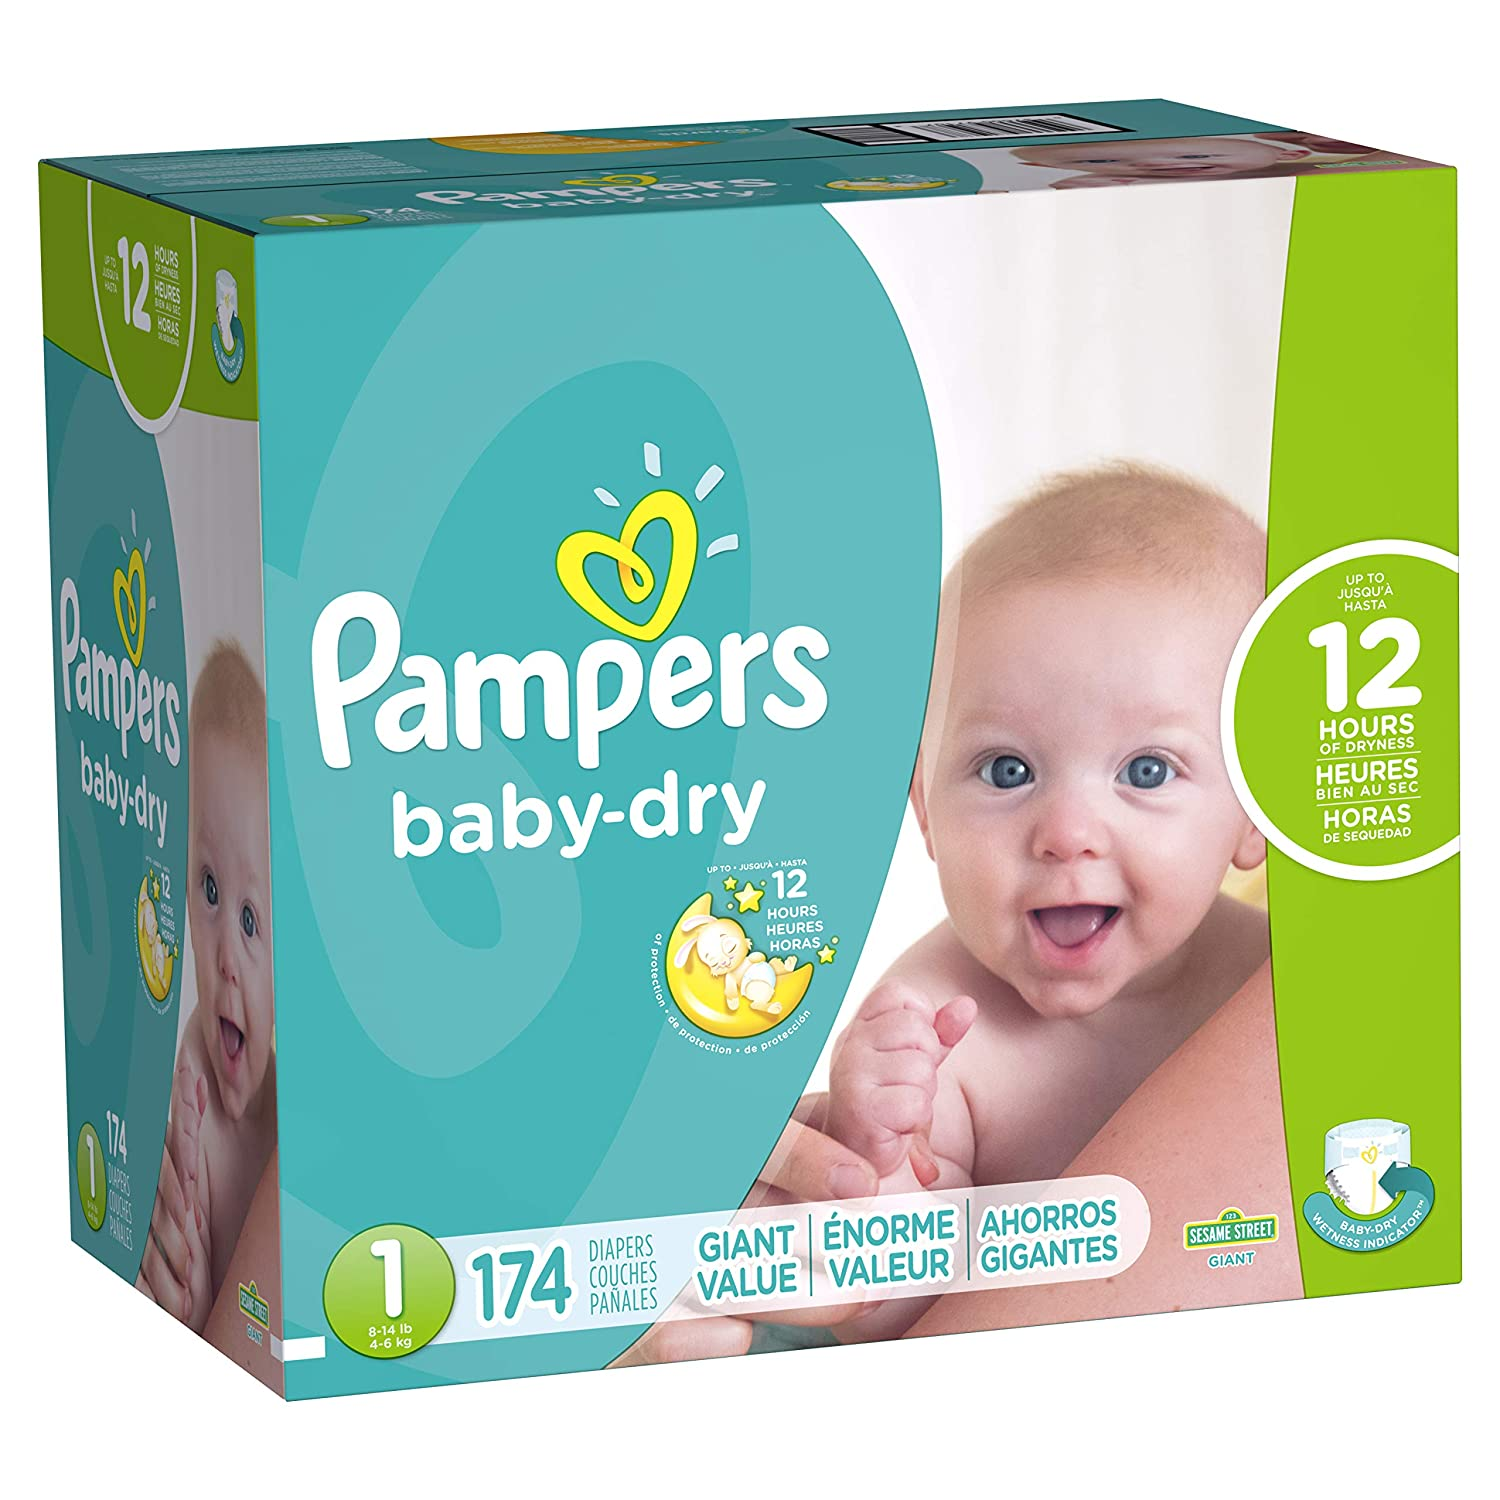 Amazon.com: Pampers Baby Dry Newborn Diapers Size 1, 174 Count: Health & Personal Care